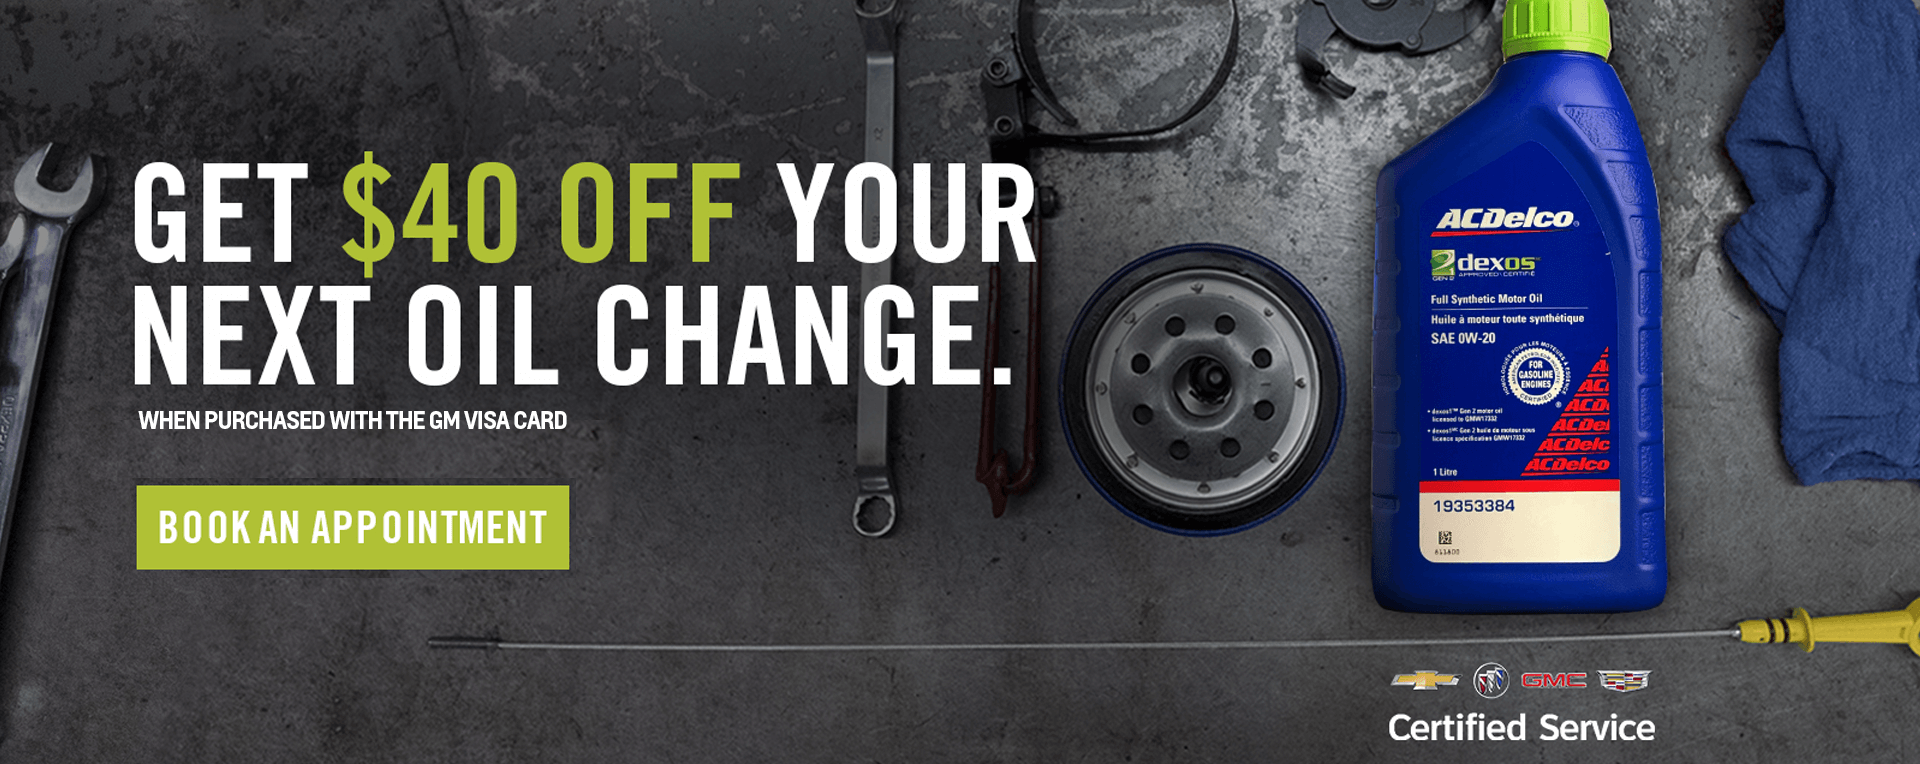 Save $40 Off Your Next Oil Change